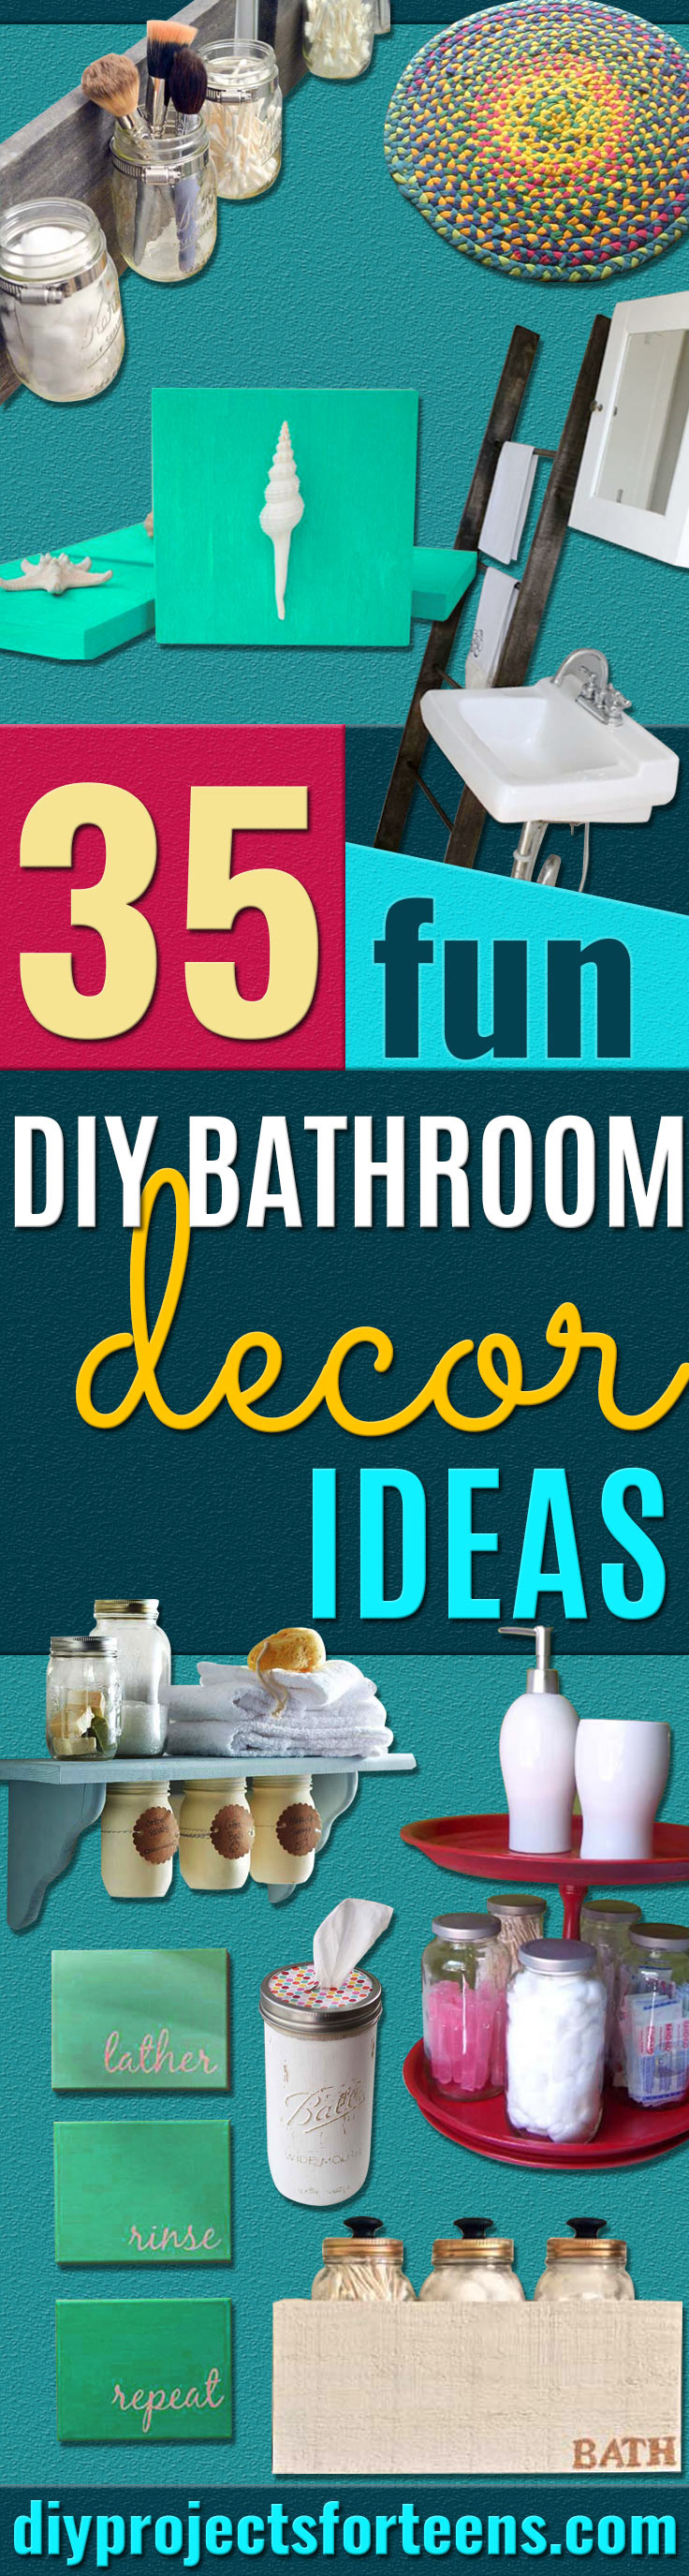 Diy Bathroom Decor For Teens